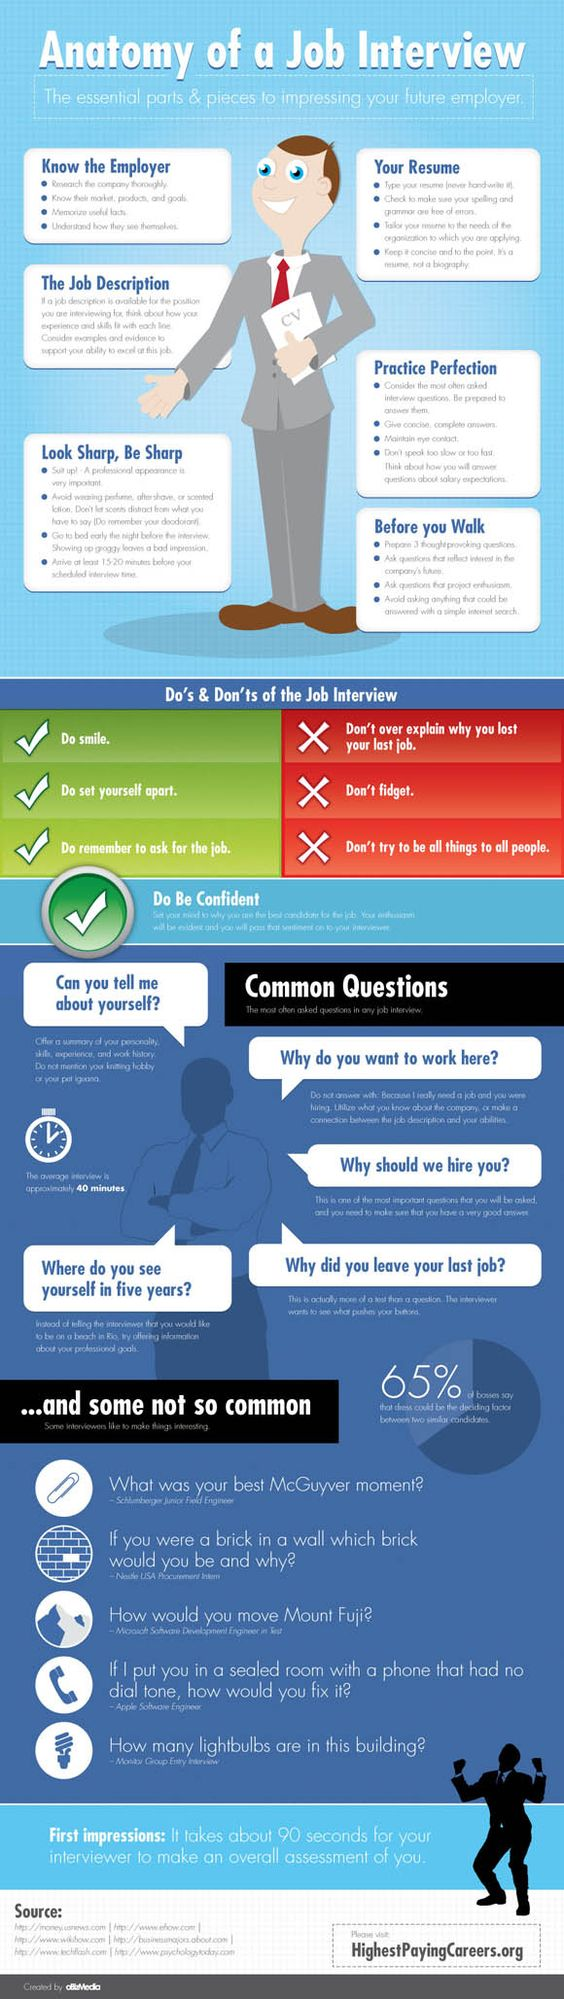 images about the job search process job 1000 images about the job search process job search job search tips and job seekers